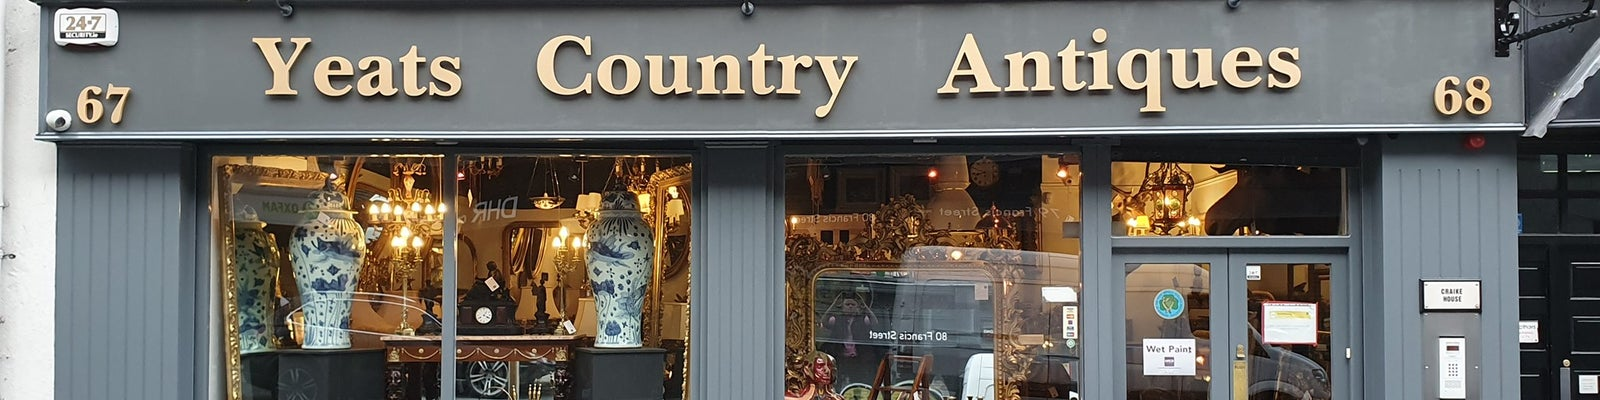 Yeats Country Antiques